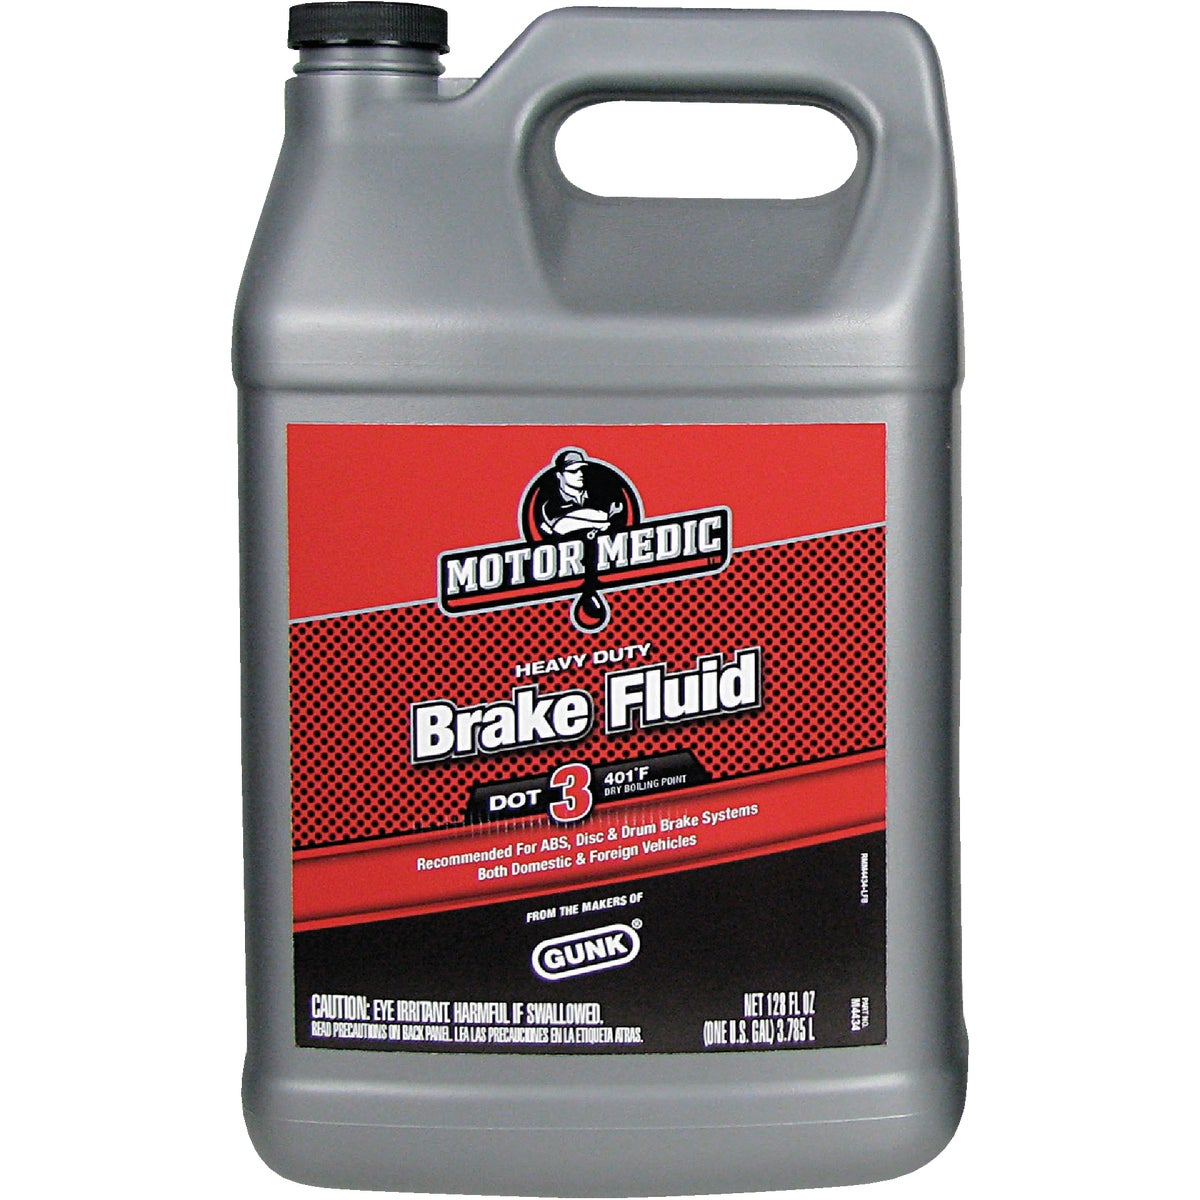 GAL BRAKE FLUID - M4434 by Radiator Specialty